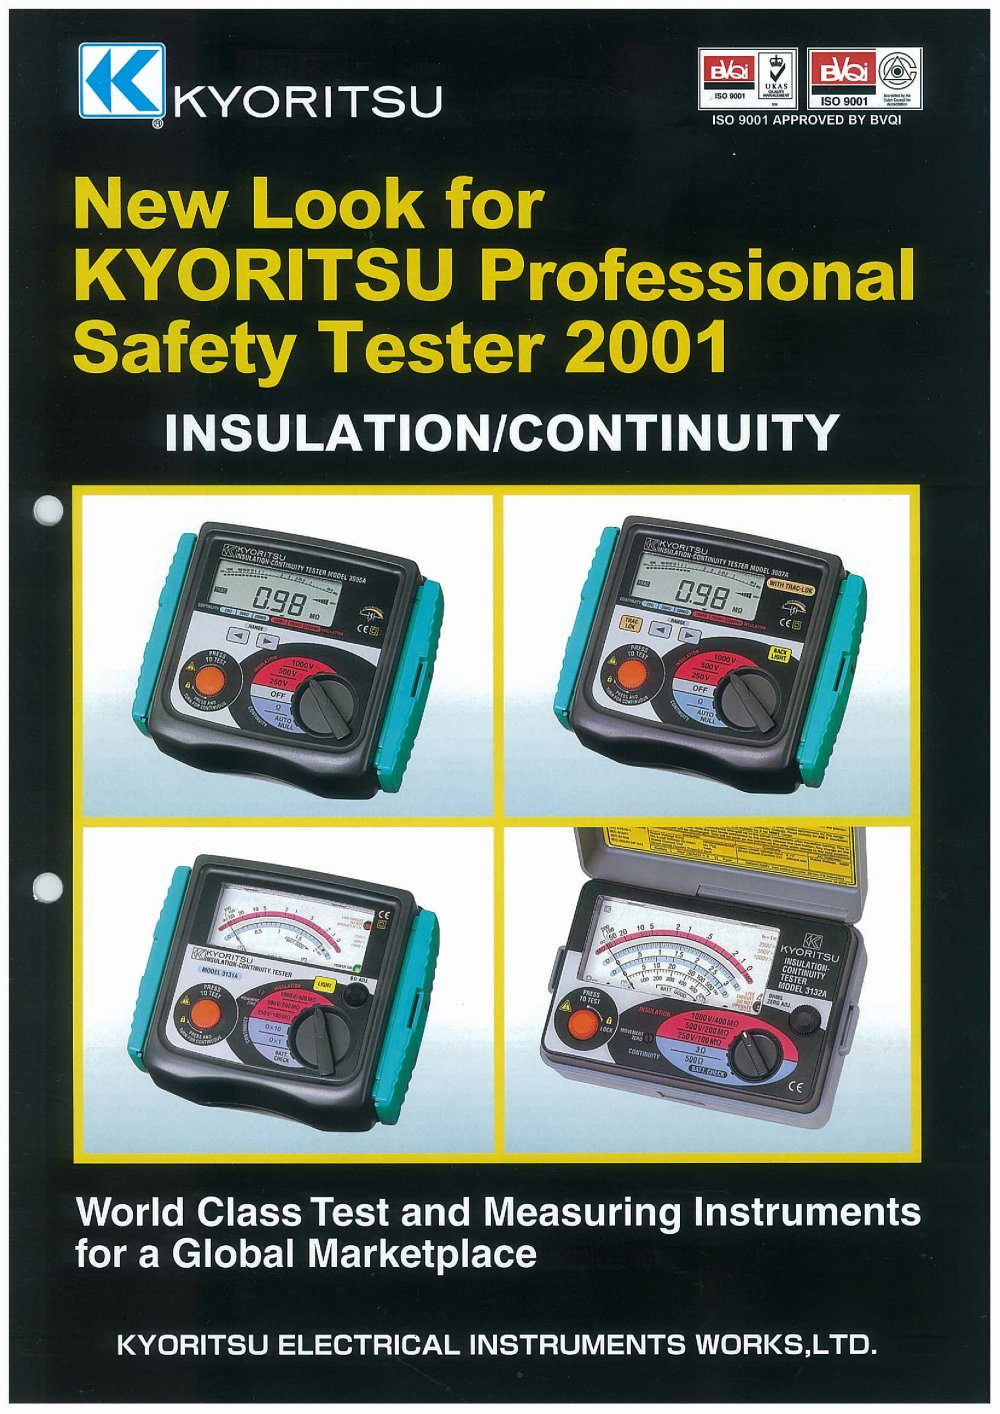 Analogue Insulation Continuity Tester 3131a Kyoritsu Pdf Continuitytestercircuitprojectjpg 1 4 Pages